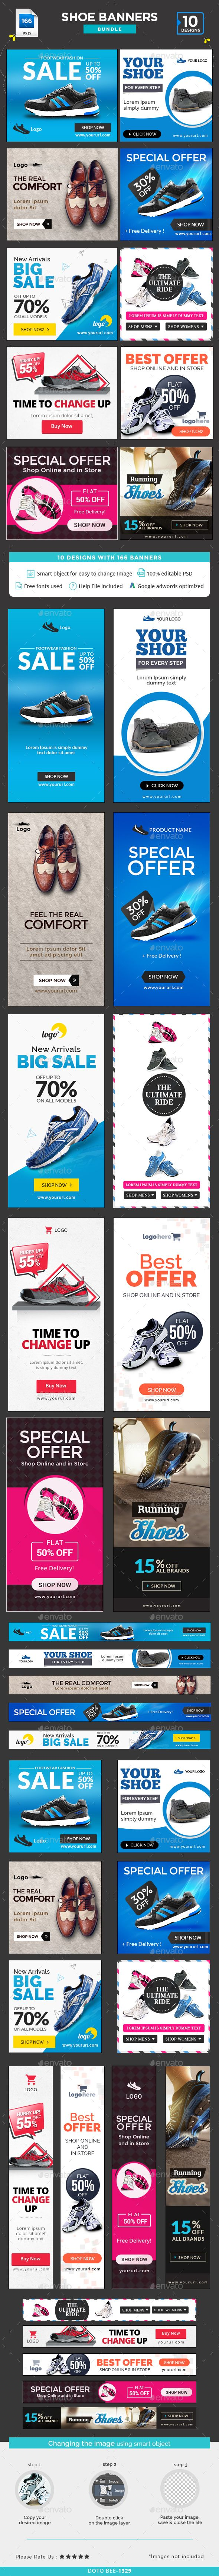 Shoe Sale Banners Bundle - 10 Sets - 166 Banners Templates PSD. Download here: http://graphicriver.net/item/shoe-sale-banners-bundle-10-sets-166-banners/15914322?ref=ksioks